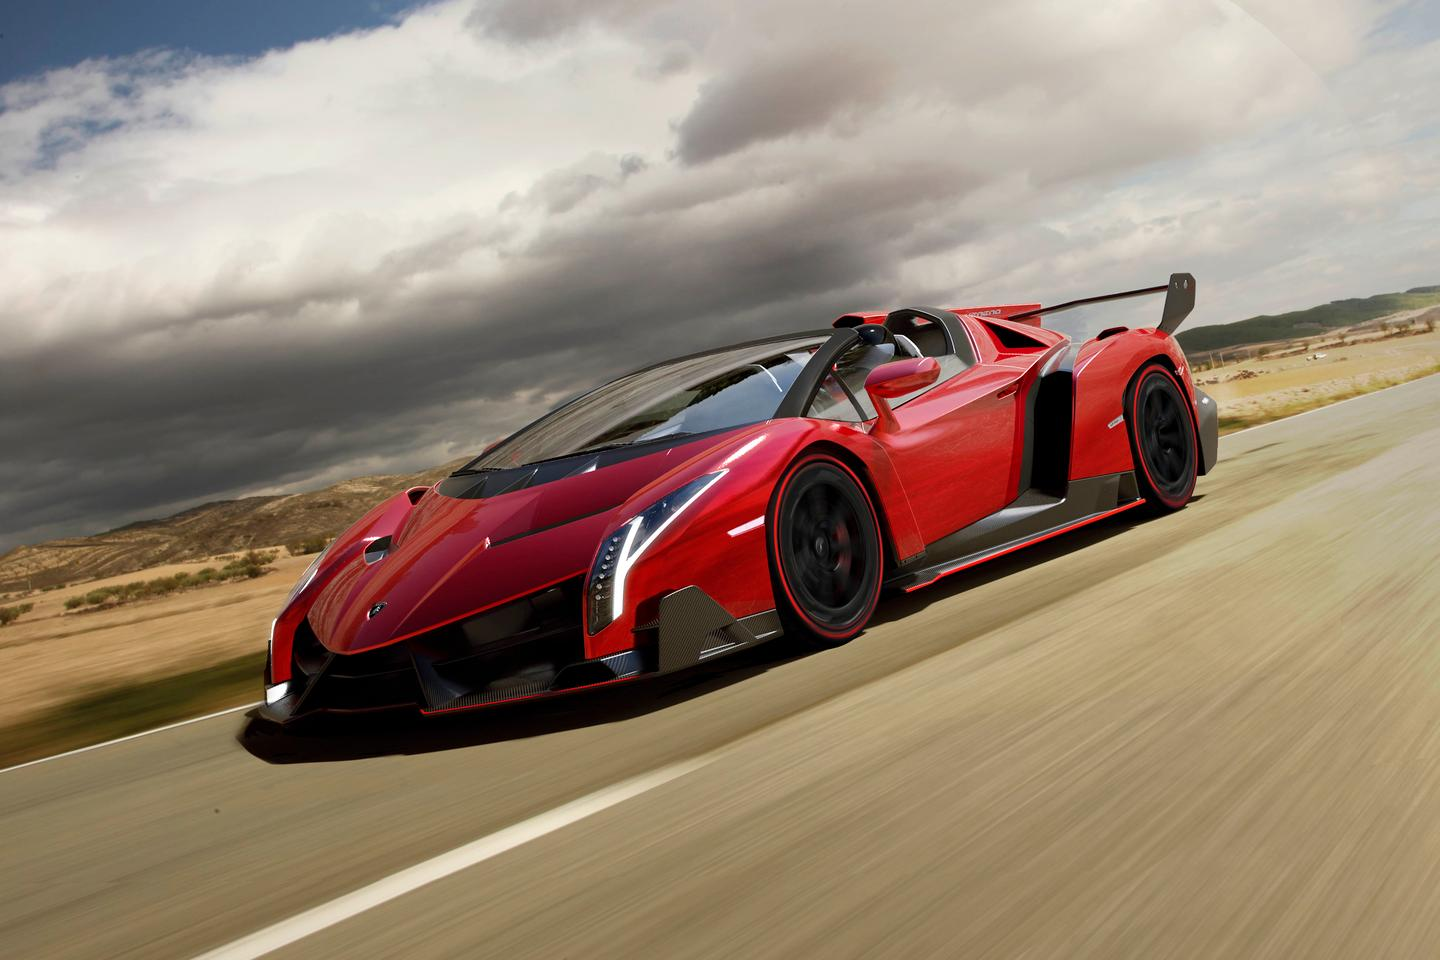 Lamborghini's new Veneno Roadster is priced out at a cool US $5.3 million, making it the most expensive model to come out of the Sant'Agata factory